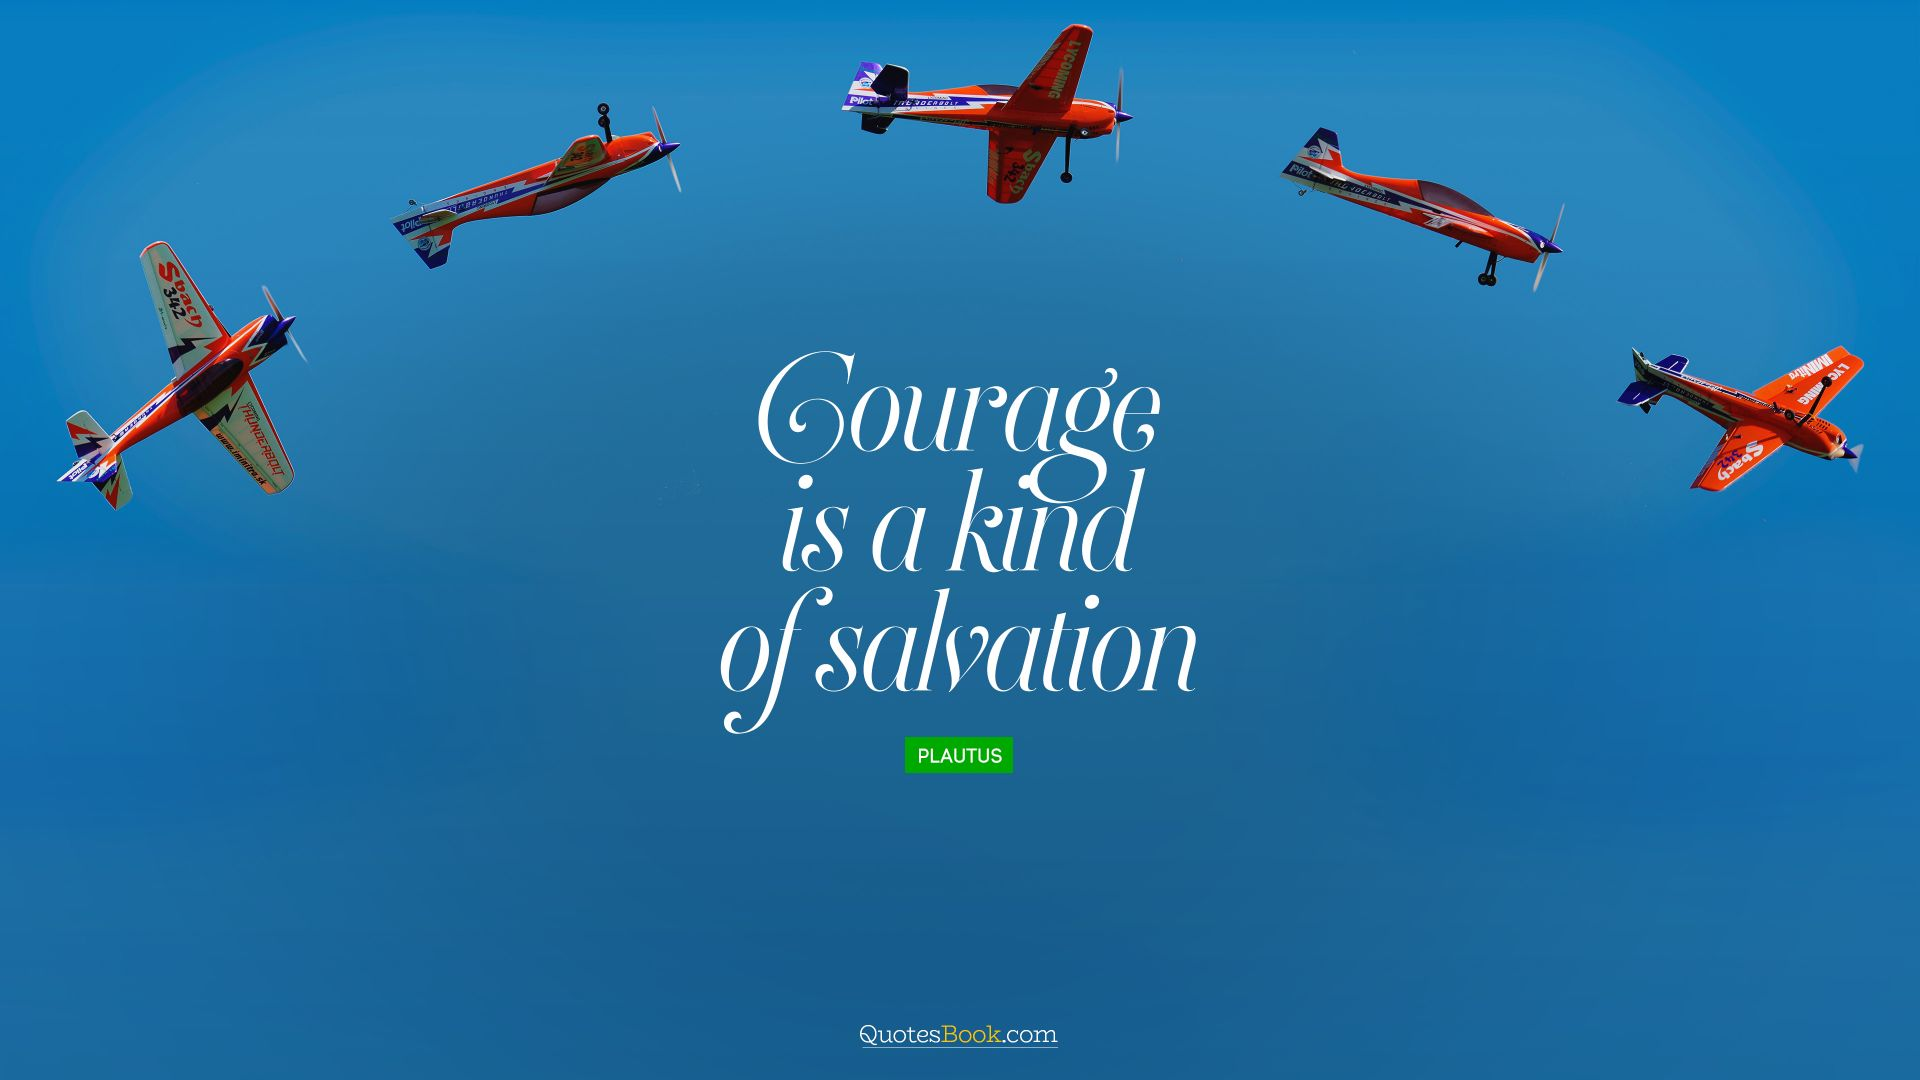 Courage is a kind of salvation. - Quote by Plautus